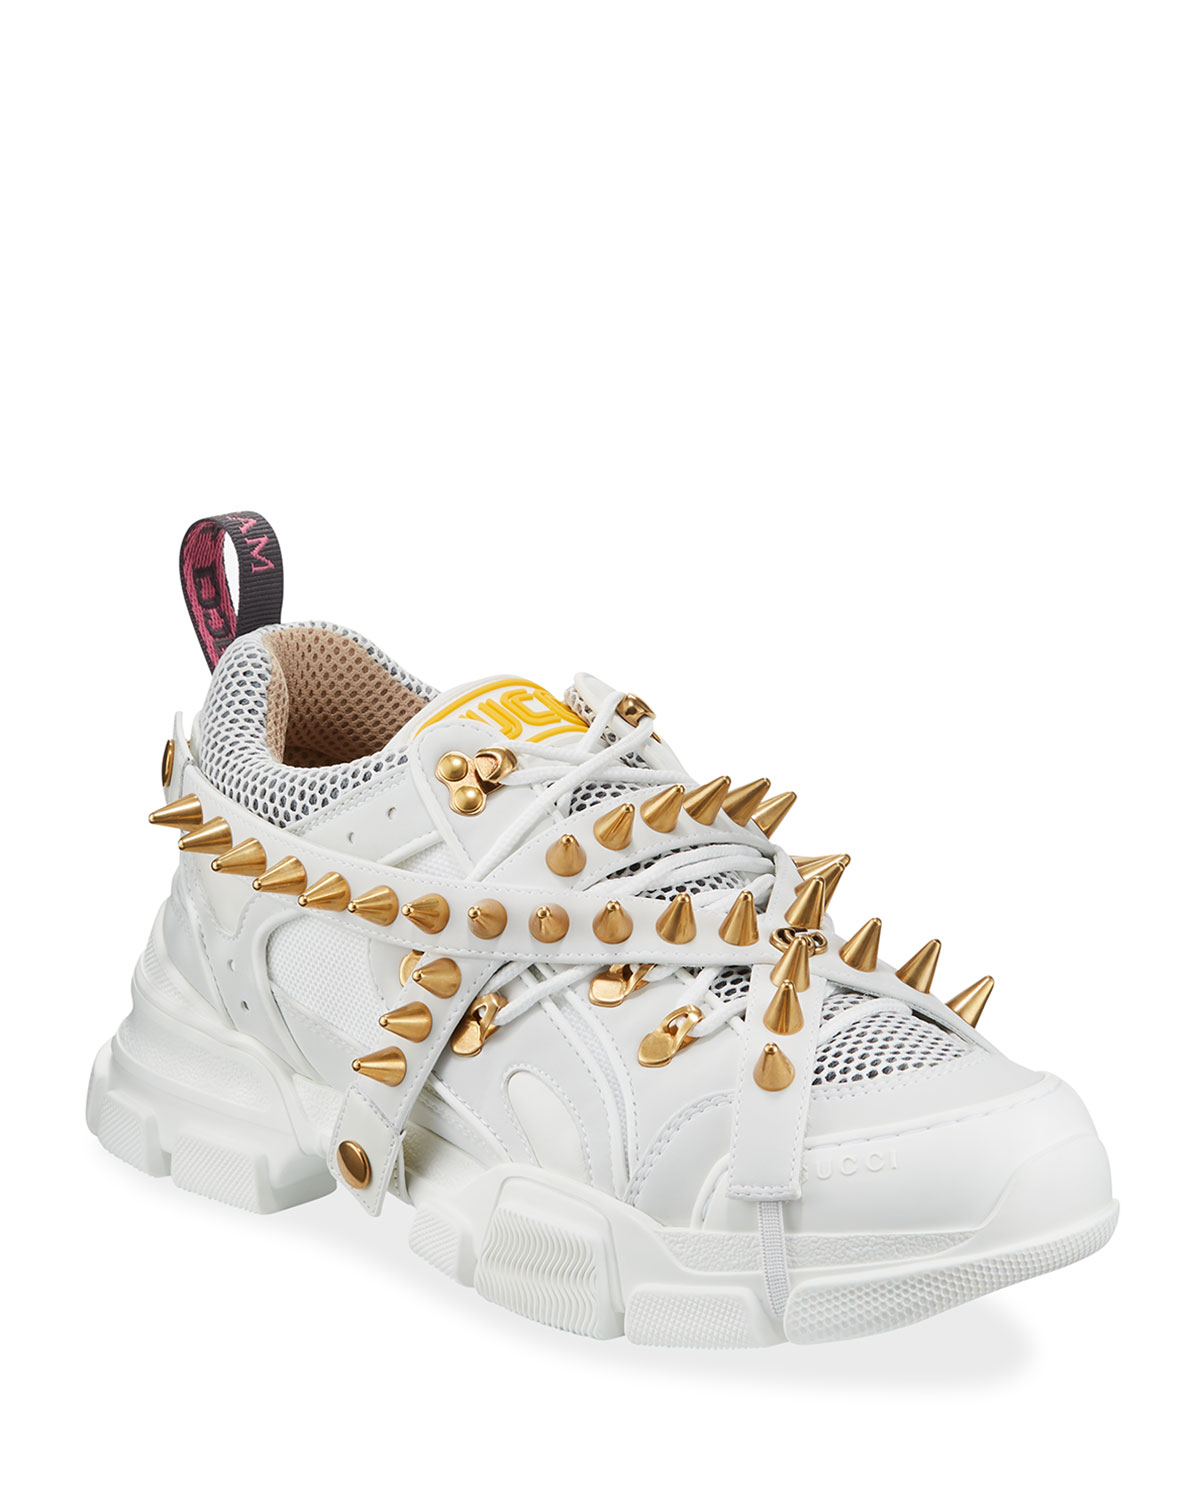 gucci spiked sneakers off 62% - www